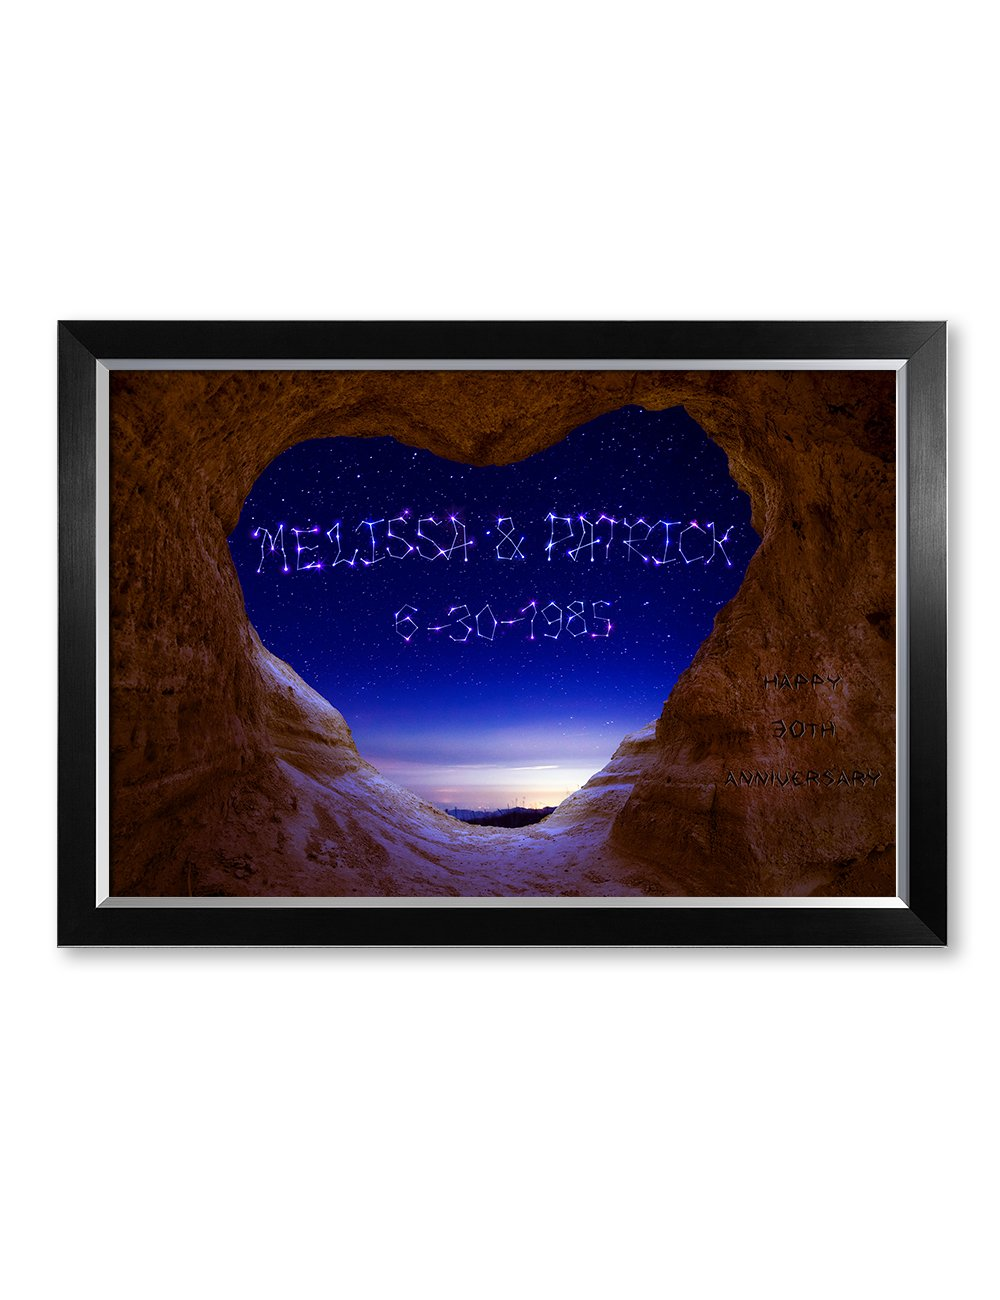 IPIC - ''Written in The Stars Personalized Constellation Artwork for Romantic Anniversary and Wedding Gifts; Picture Size: 30x20, Framed Size: 33x23x1.25